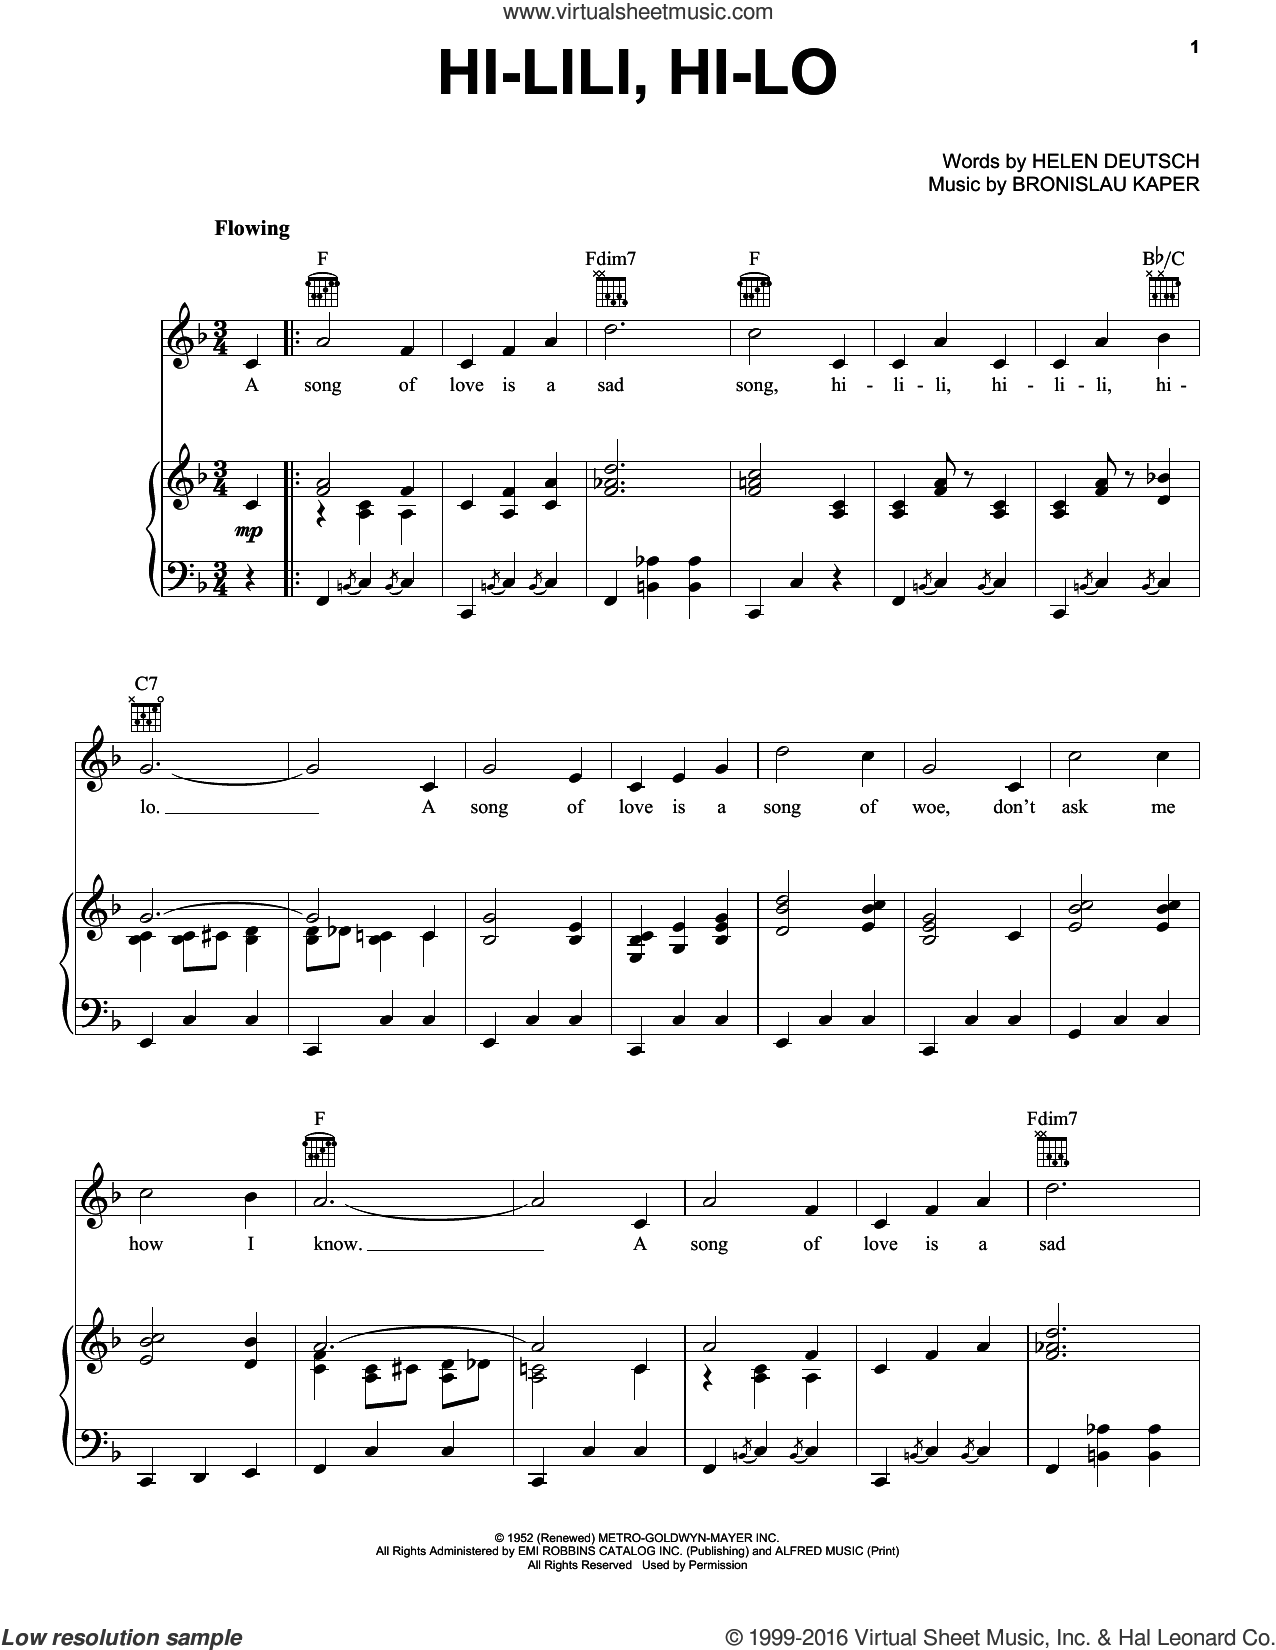 Hi-lili, Hi-lo sheet music for voice, piano or guitar by Gene Vincent, Duane Eddy, Bronislau Kaper and Helen Deutsch, intermediate skill level